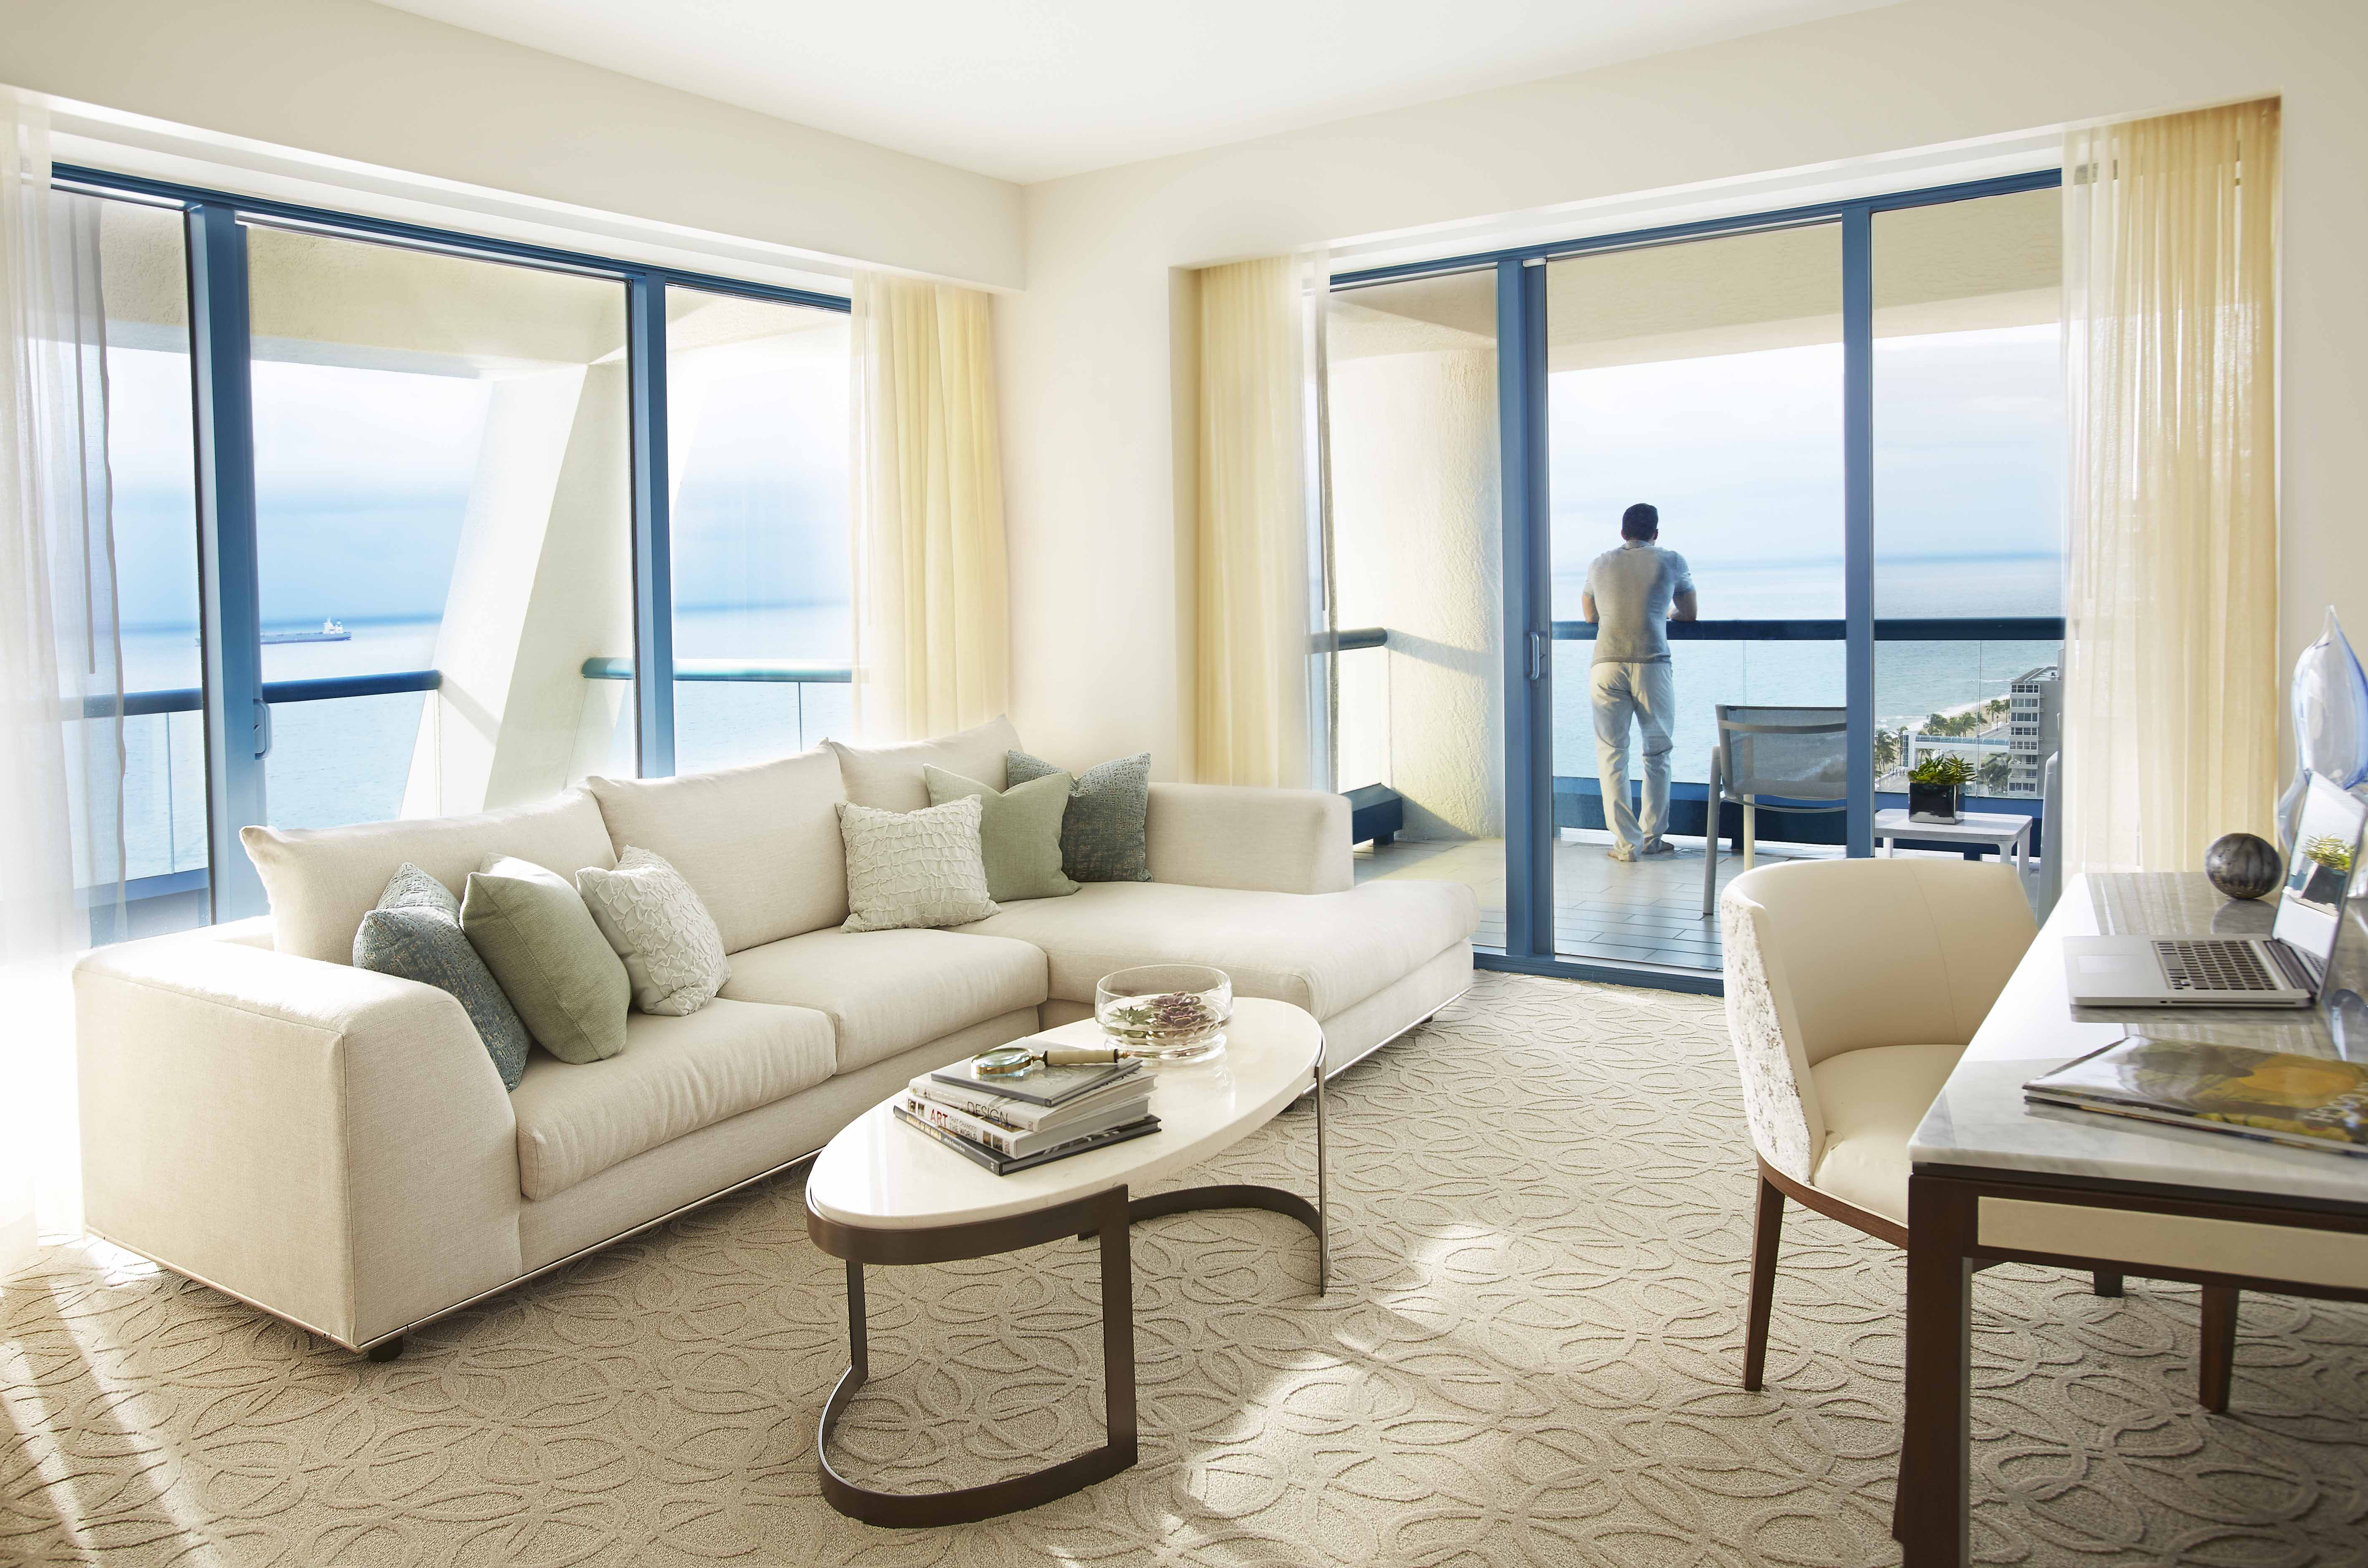 Wonderful 1-Bed within The Ocean at Fort Lauderdale - 5 Star Hotel ...